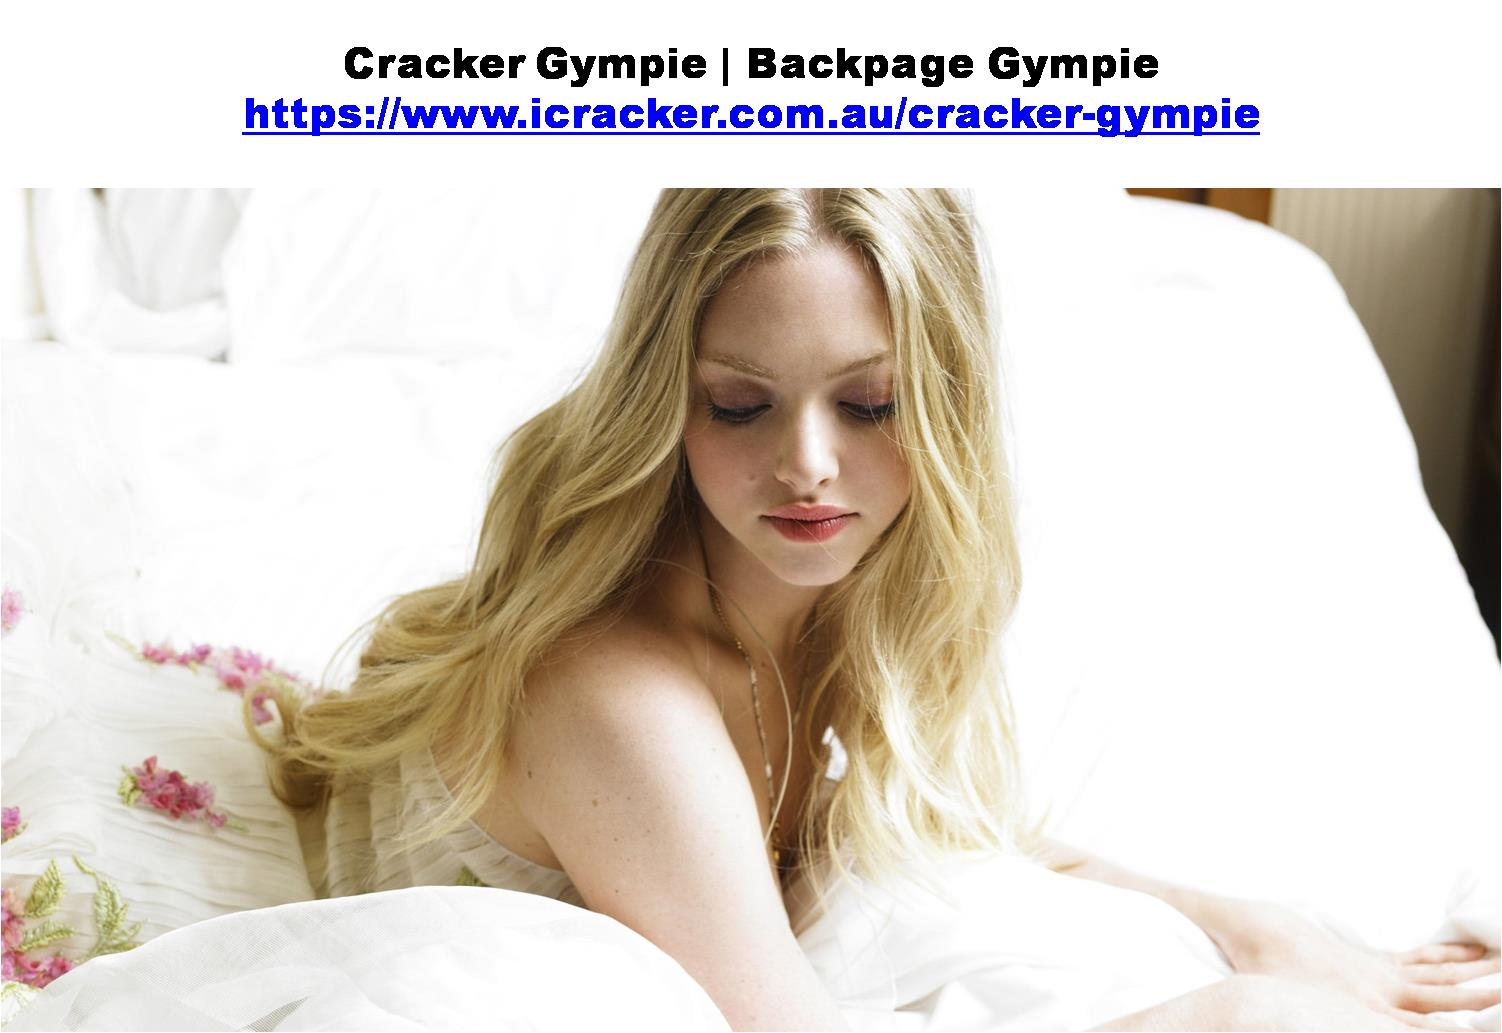 Cracker Gympie | Backpage Gympie